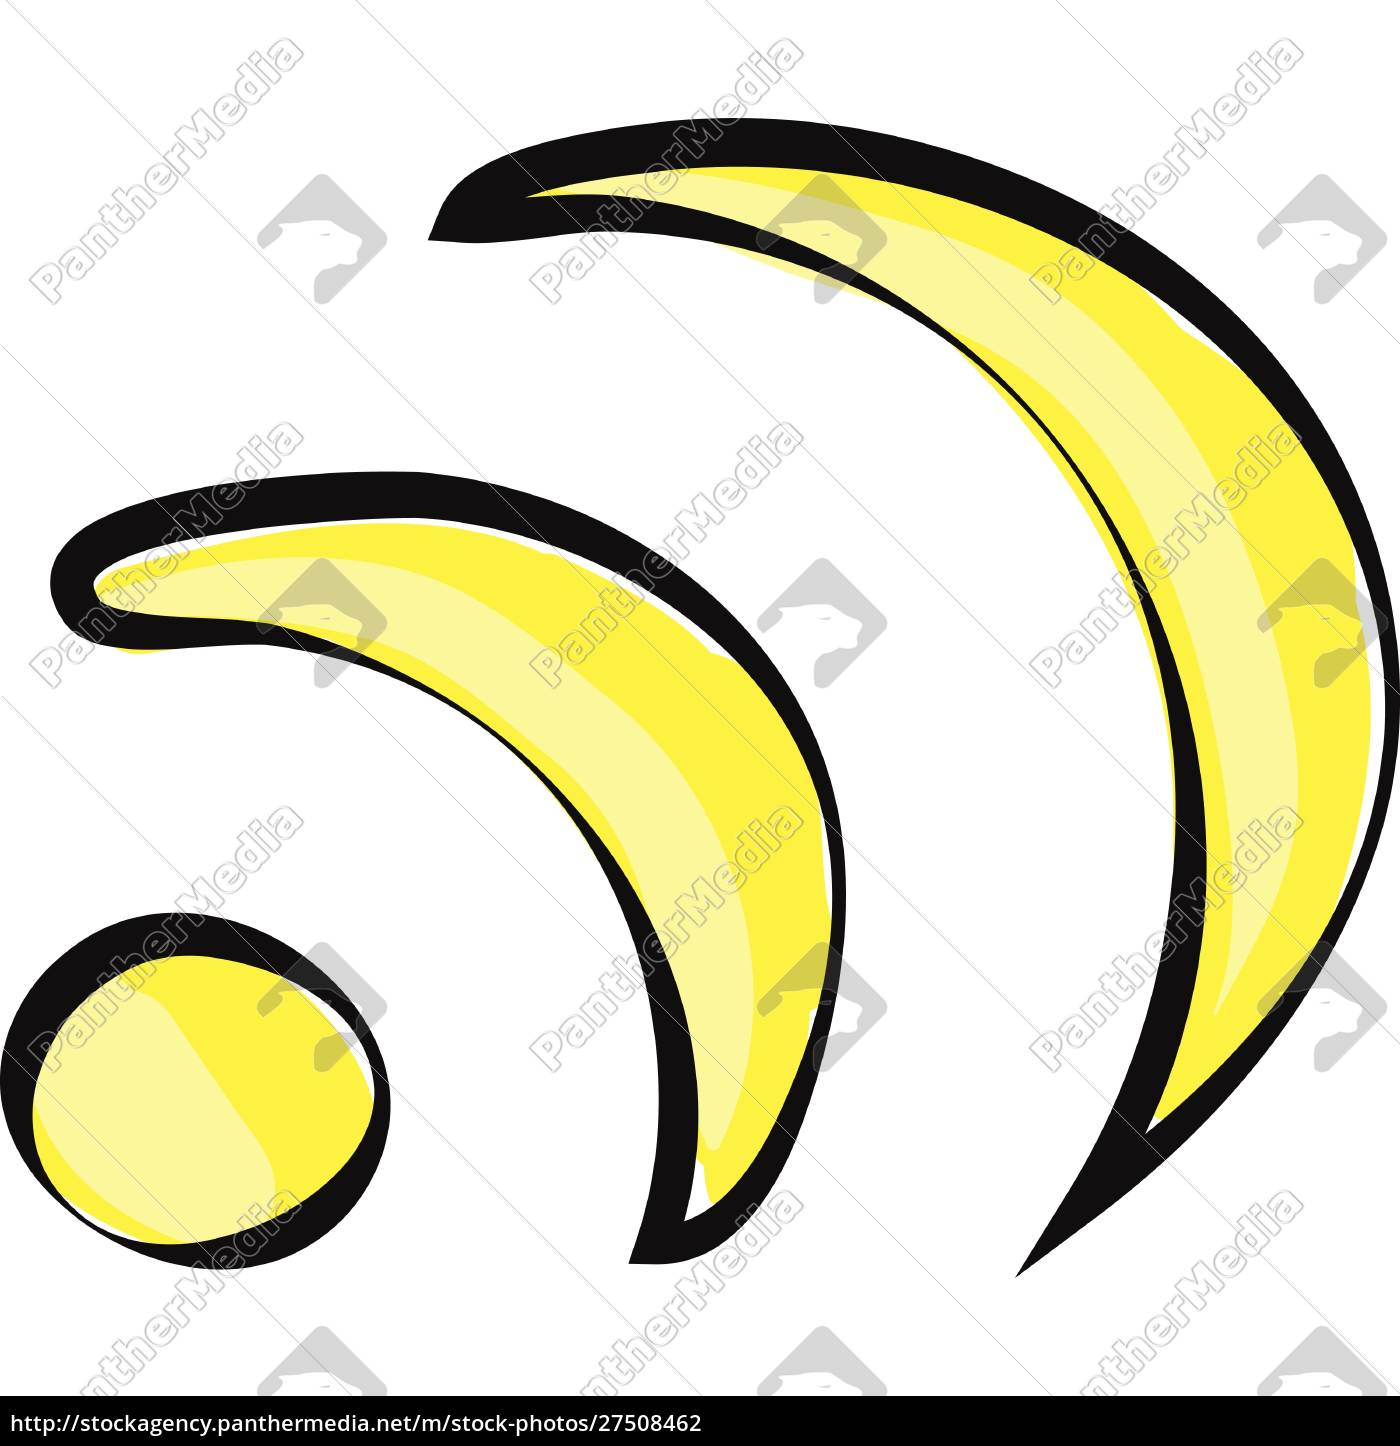 a, yellow, color, illustration, of, wi-fi, - 27508462